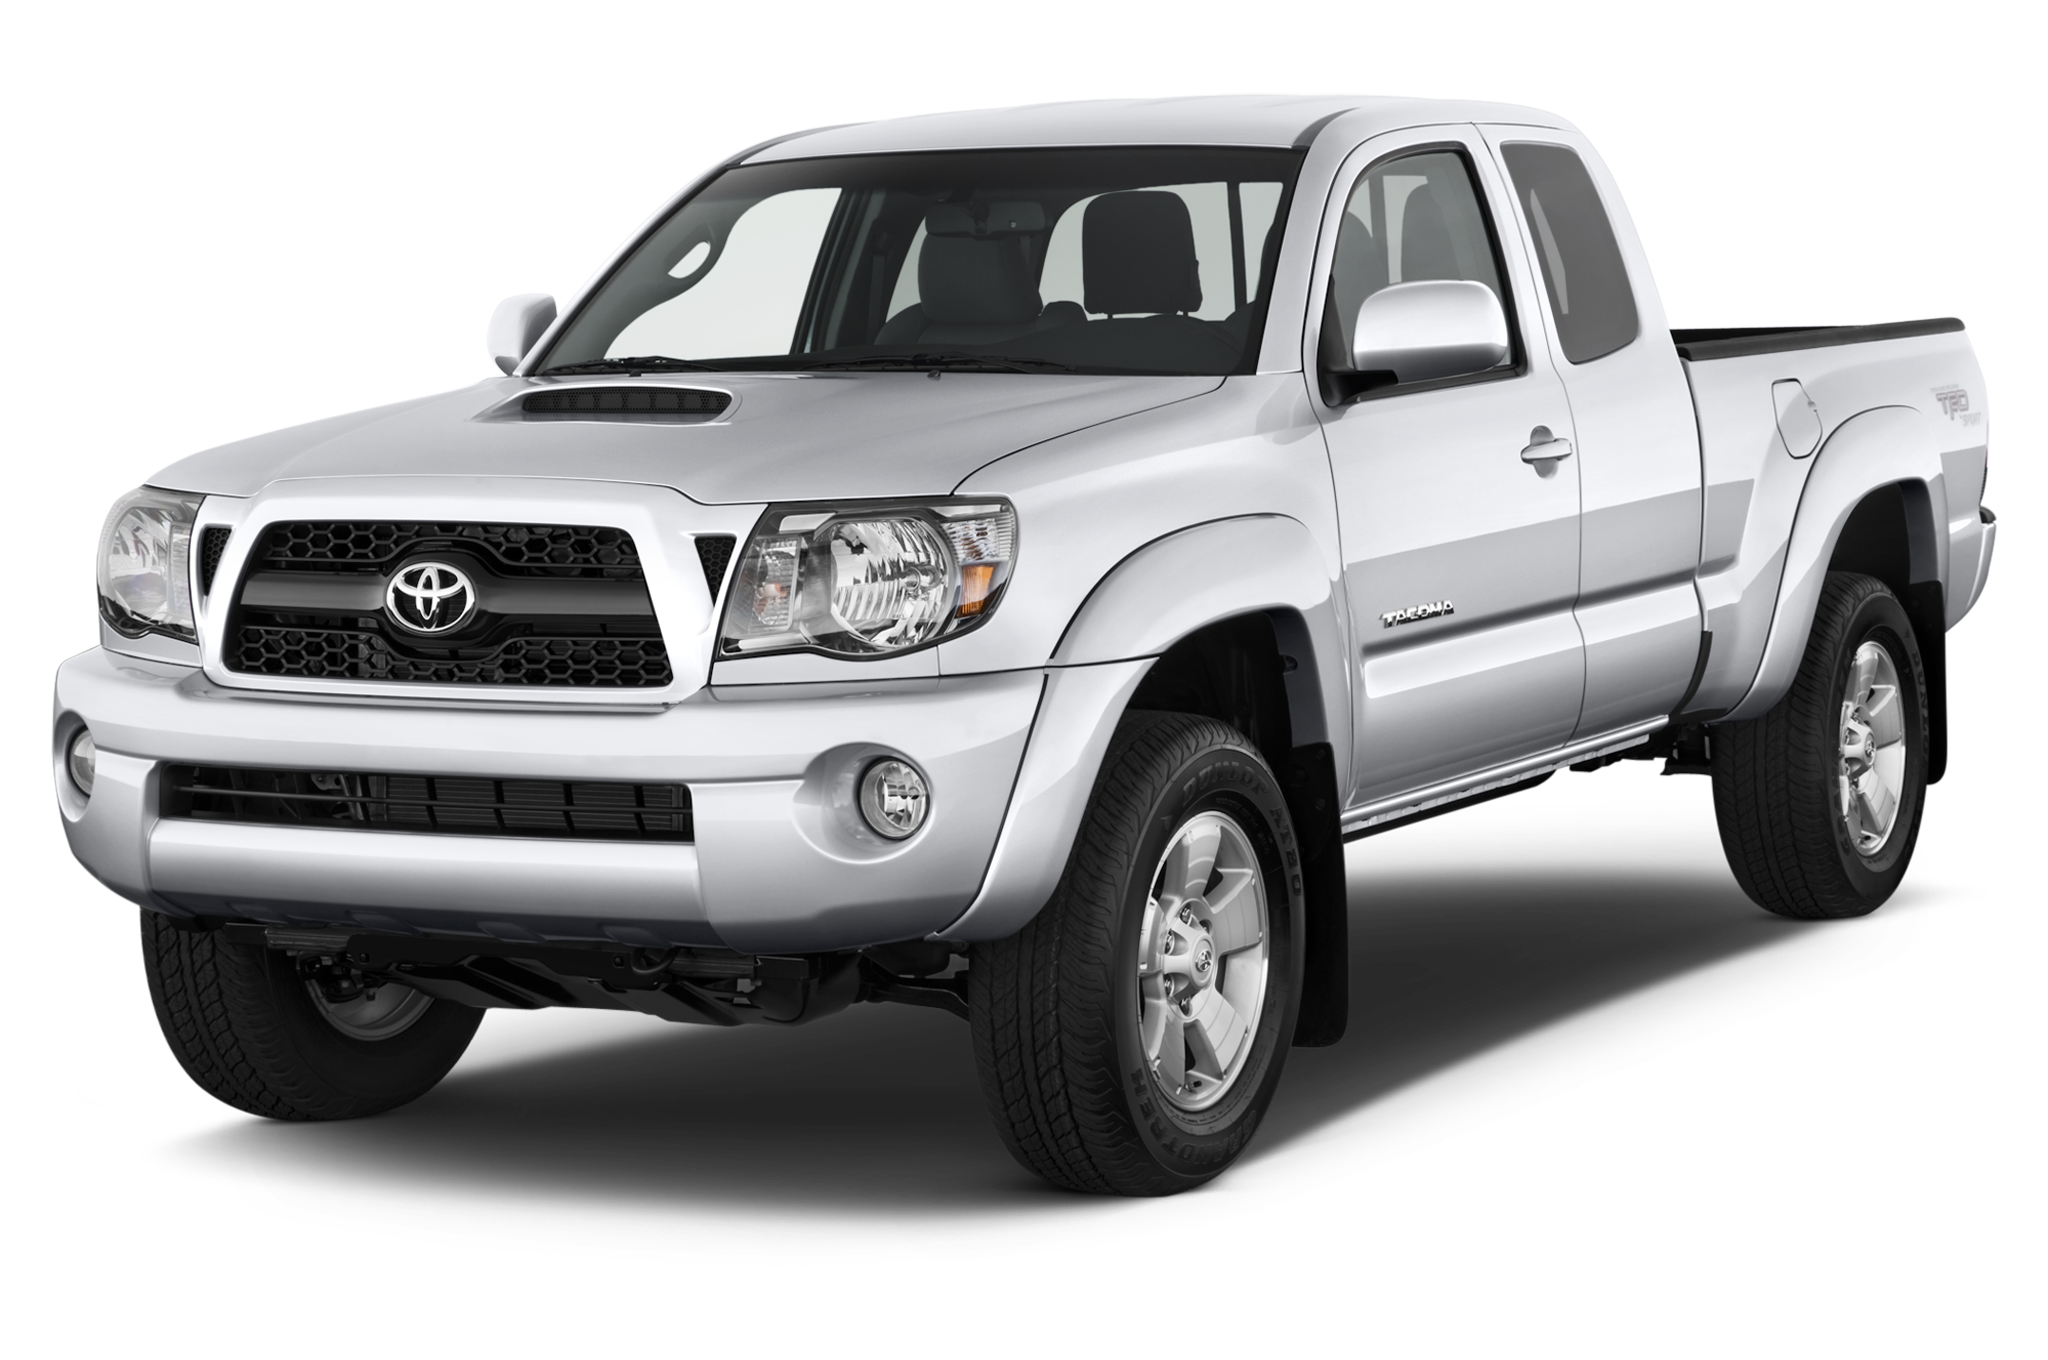 toyota announces pricing for its updated 2011 tacoma. Black Bedroom Furniture Sets. Home Design Ideas